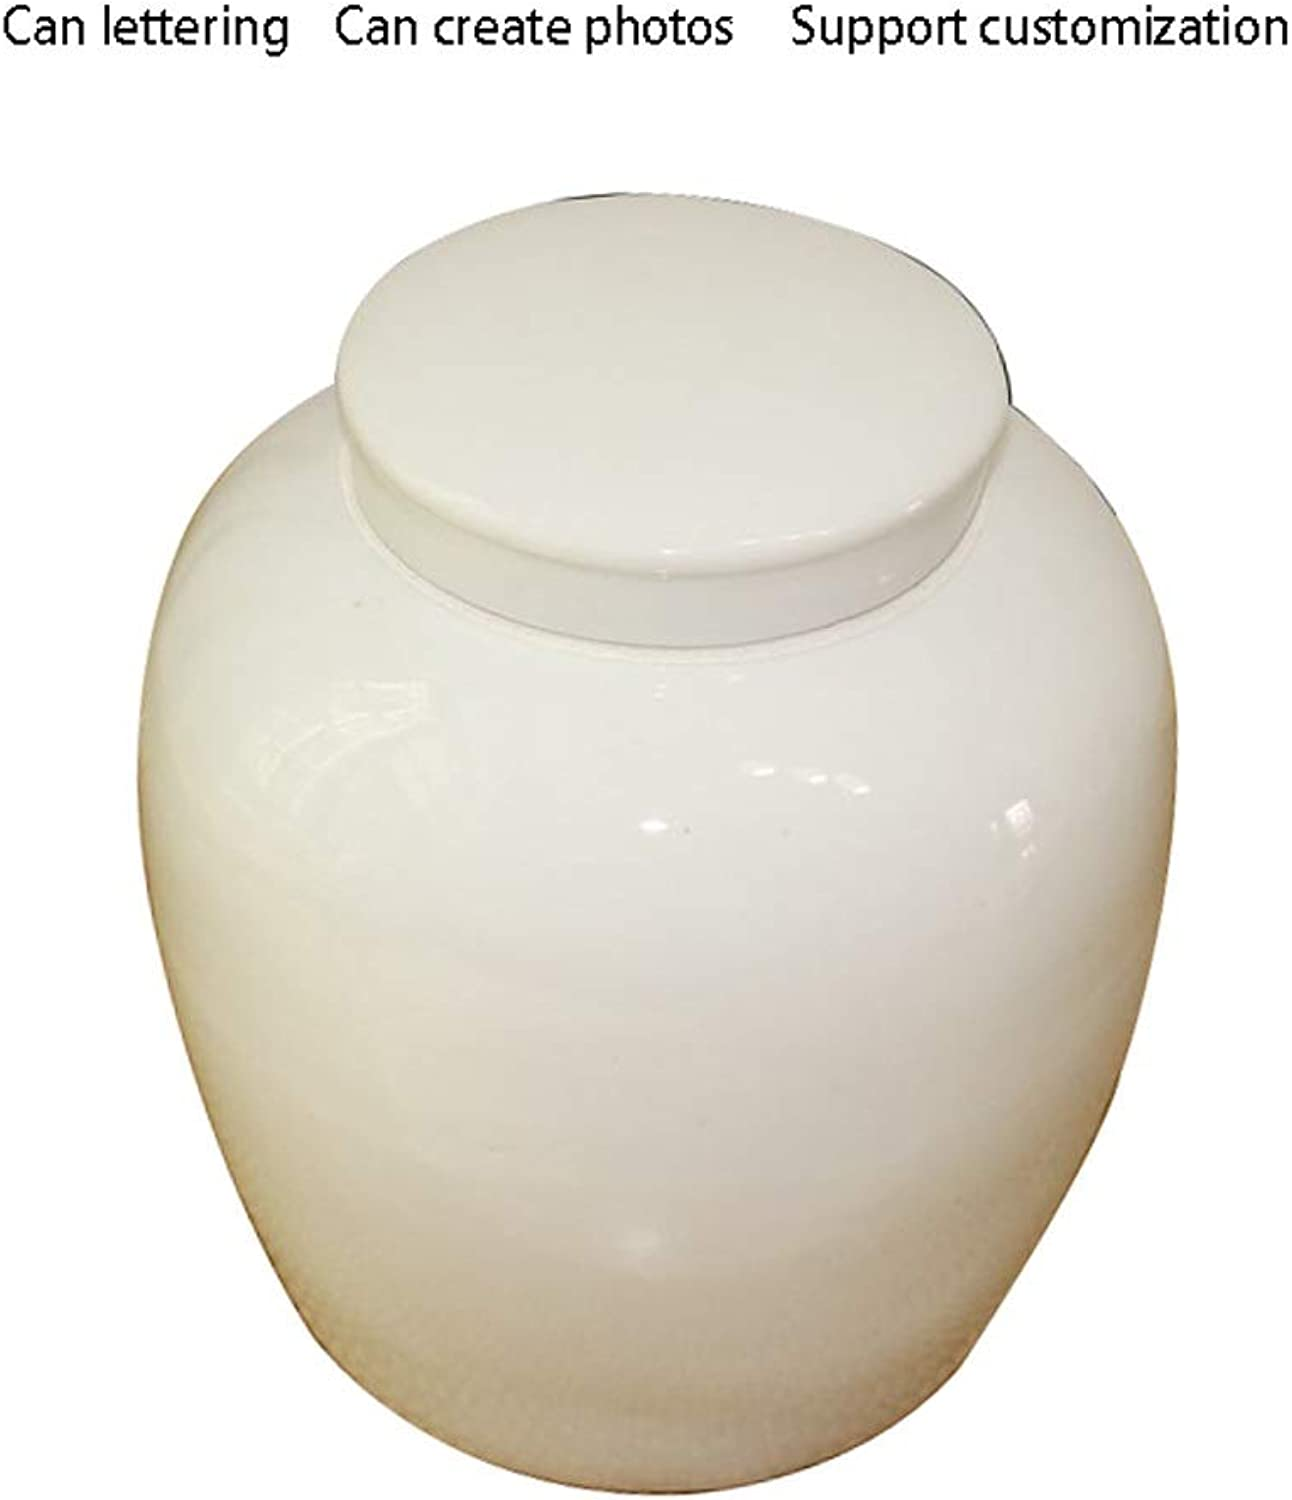 NYJ Urn, Cremation Urns For Pets, Pet Urn, Ceramic Sealed